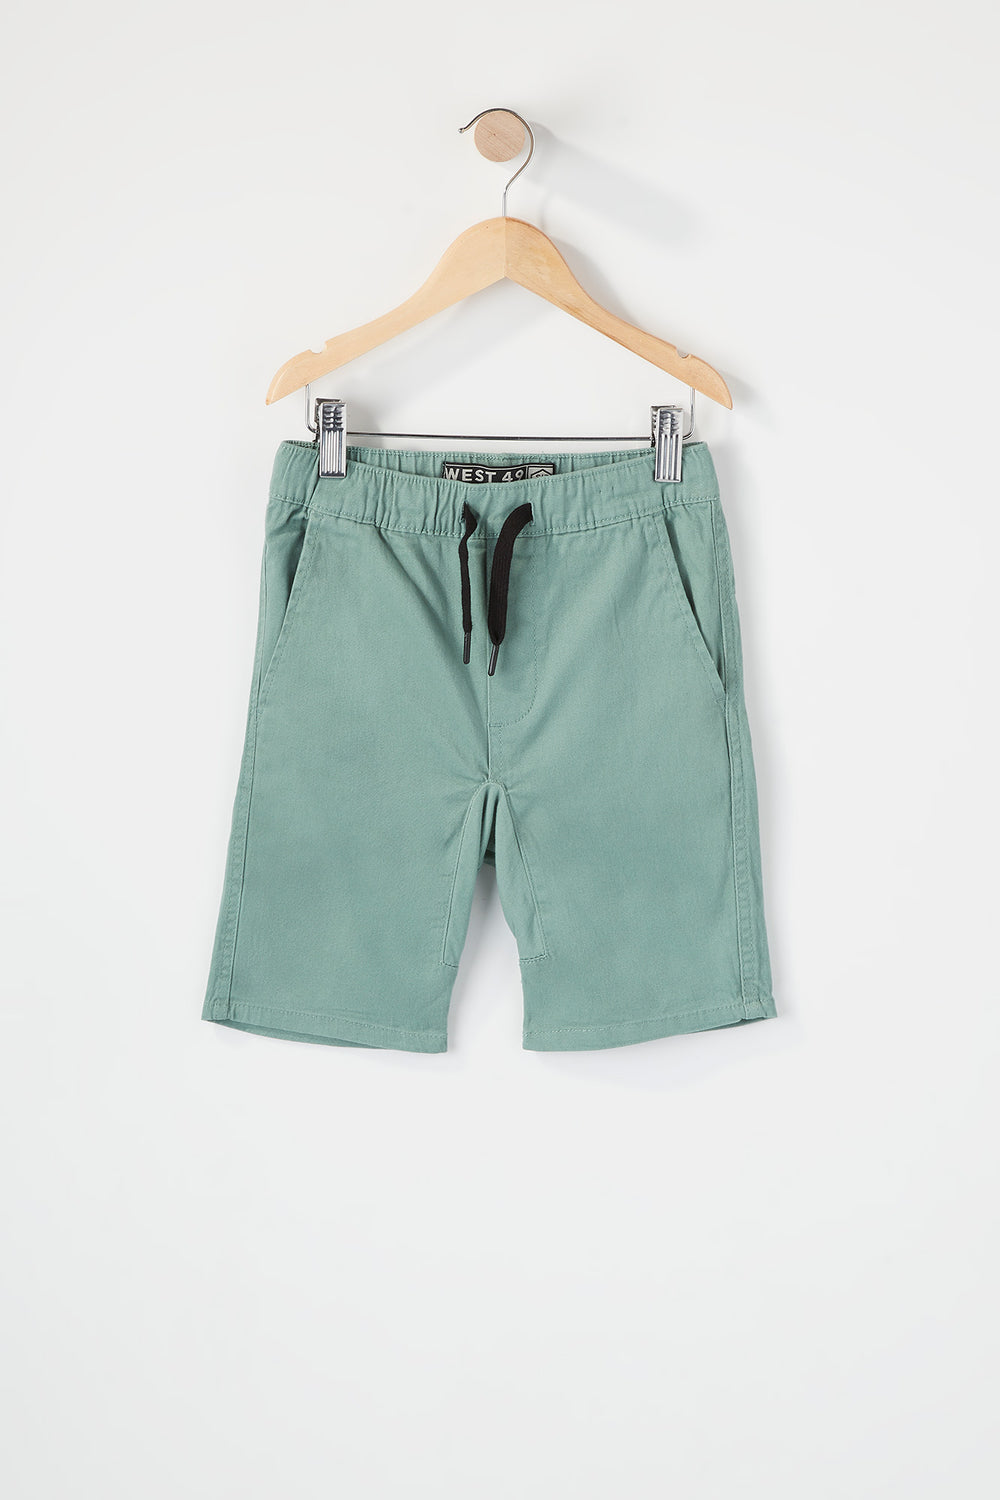 West49 Boys Jogger Short Sage